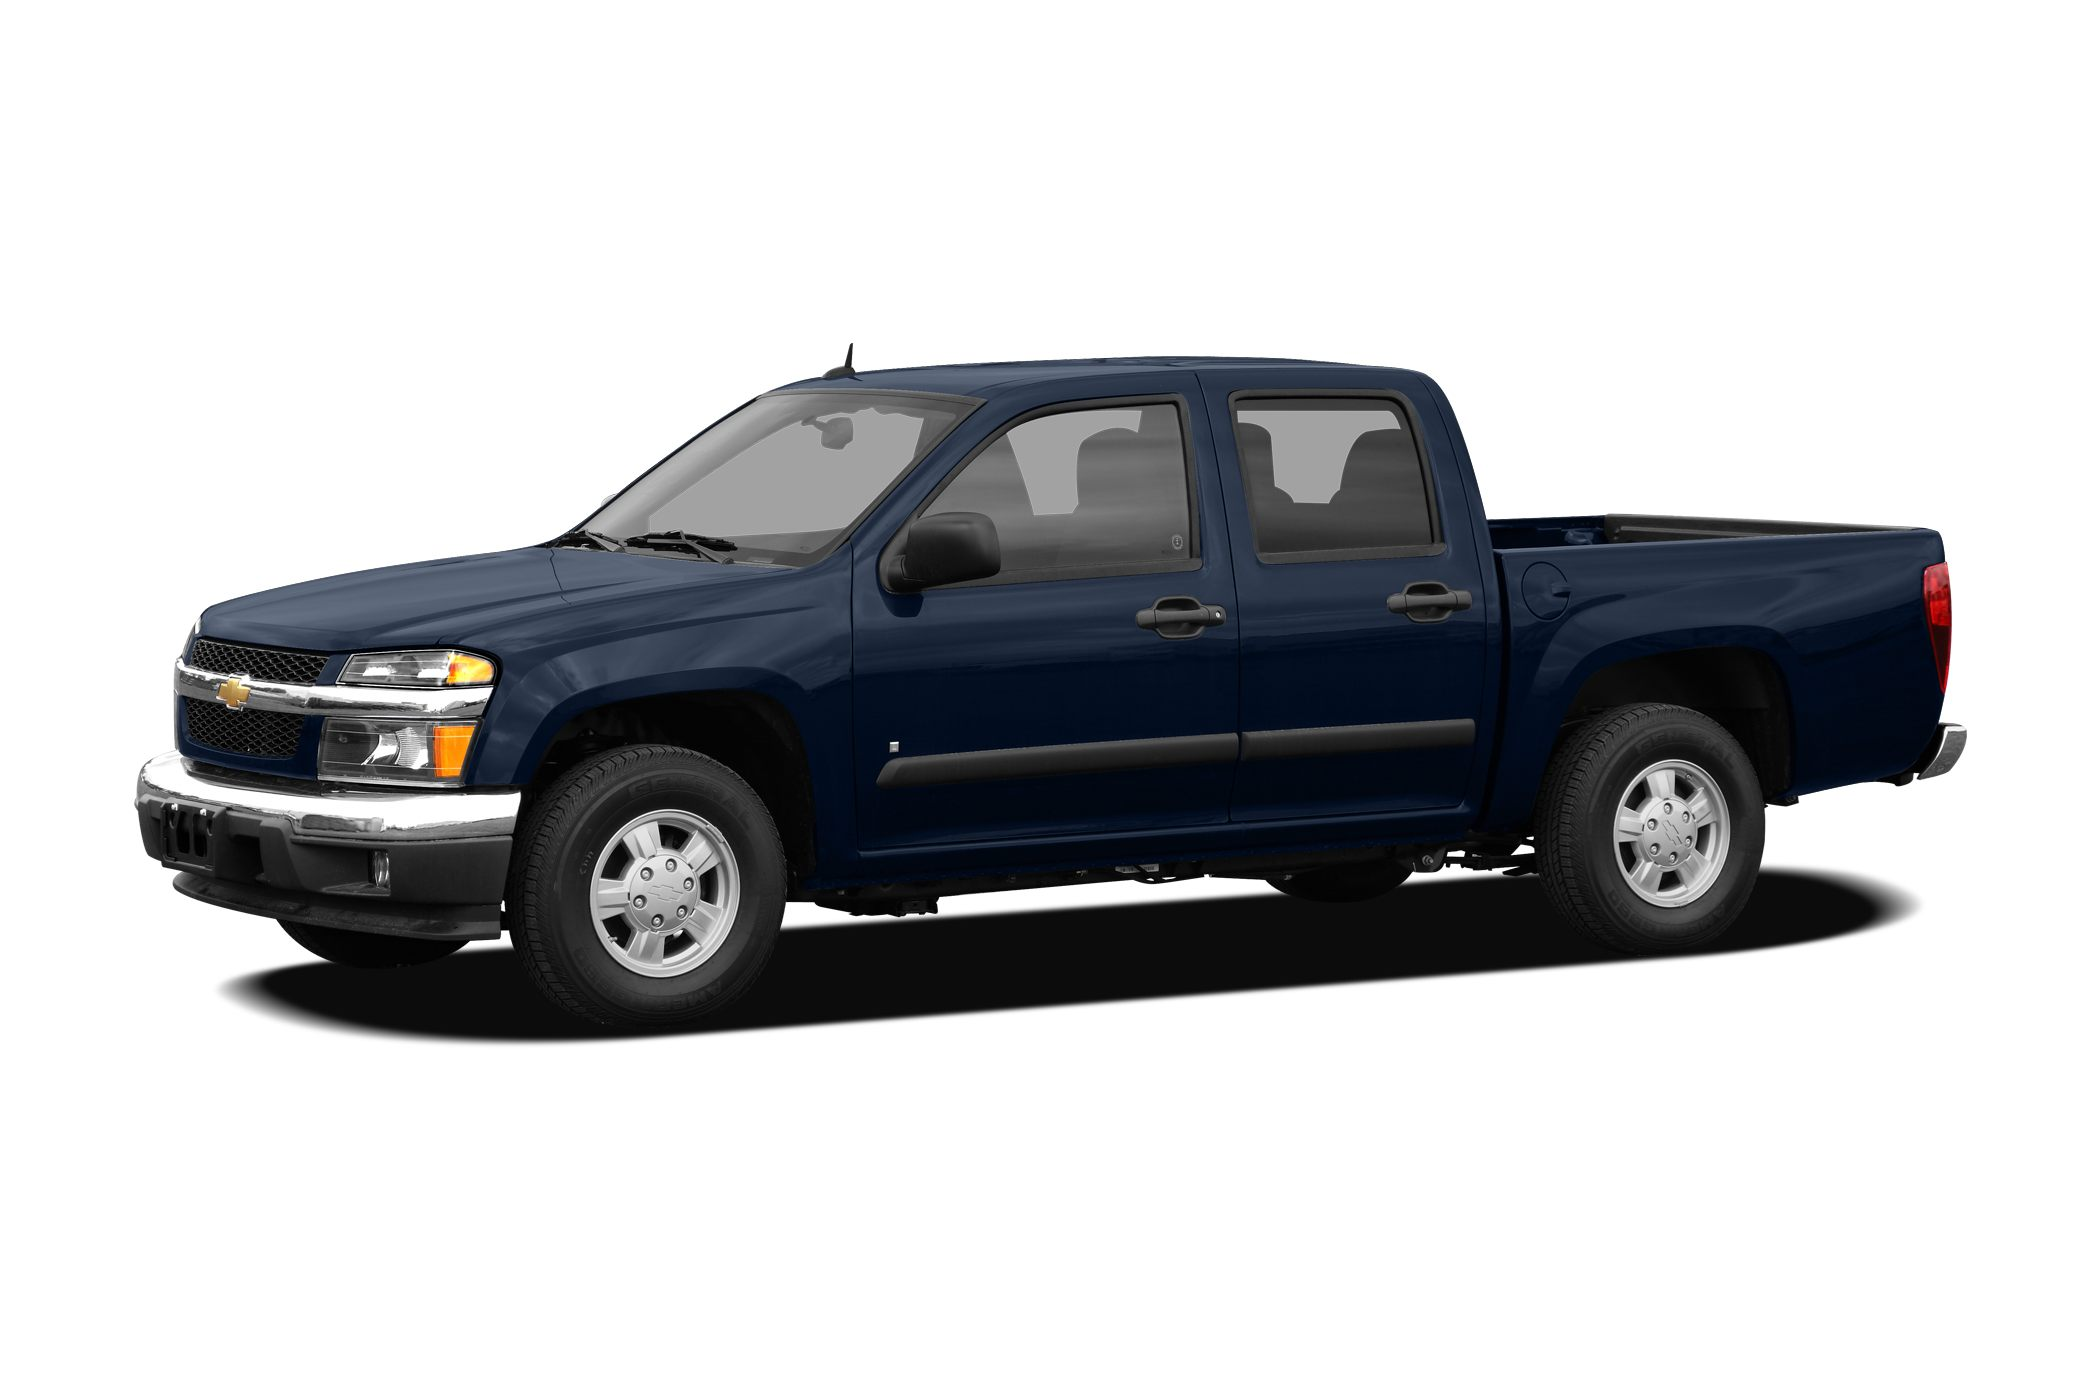 2008 Chevrolet Colorado Lt 4x4 Crew Cab 5 Ft Box 126 In Wb Specs And Prices